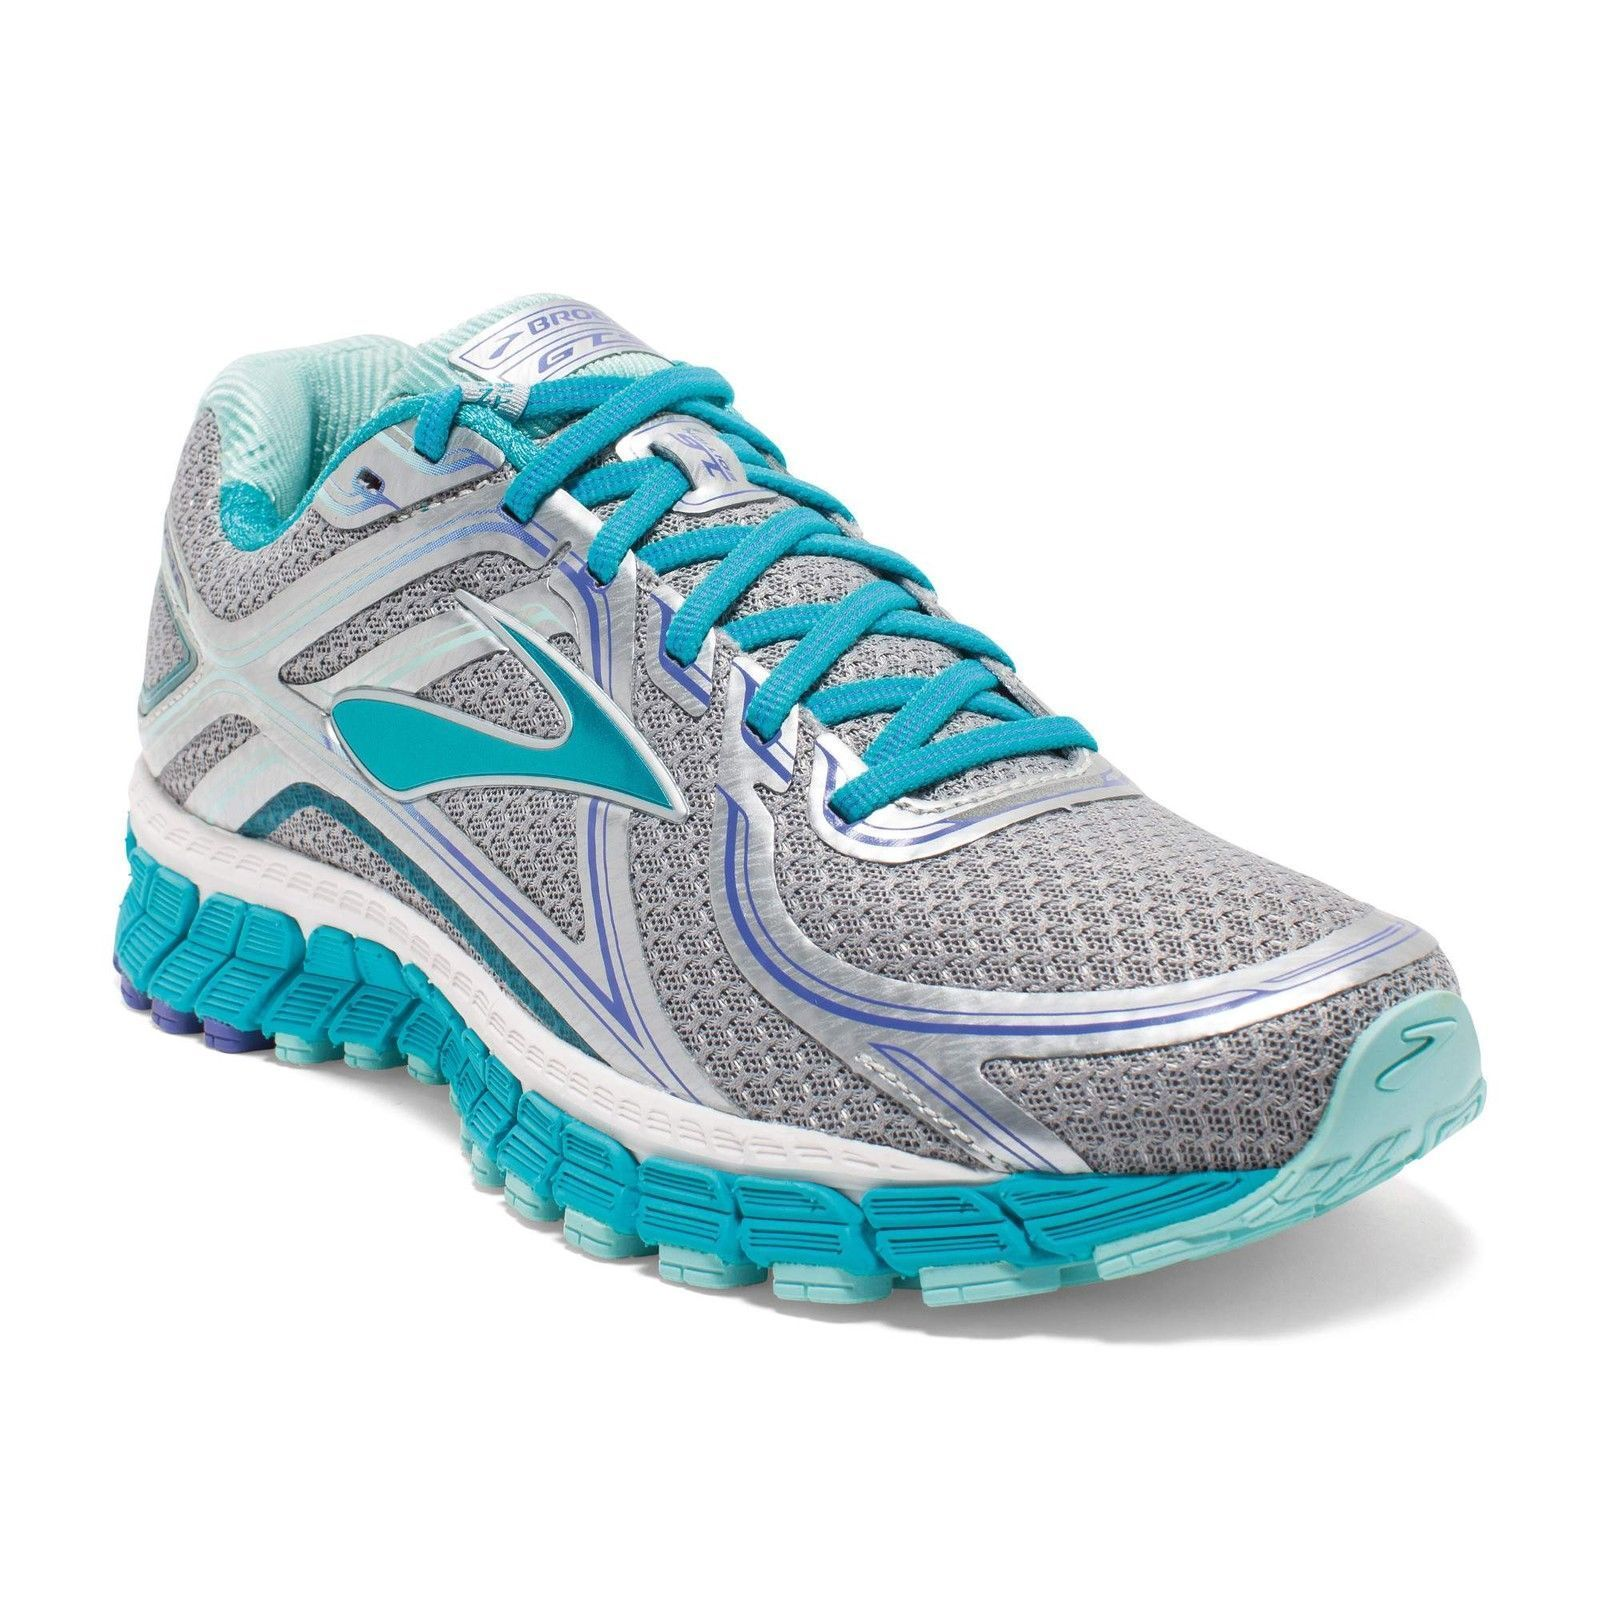 reputable site 51970 fae9a Brooks Running Women S Adrenaline Gts 16 Shoe